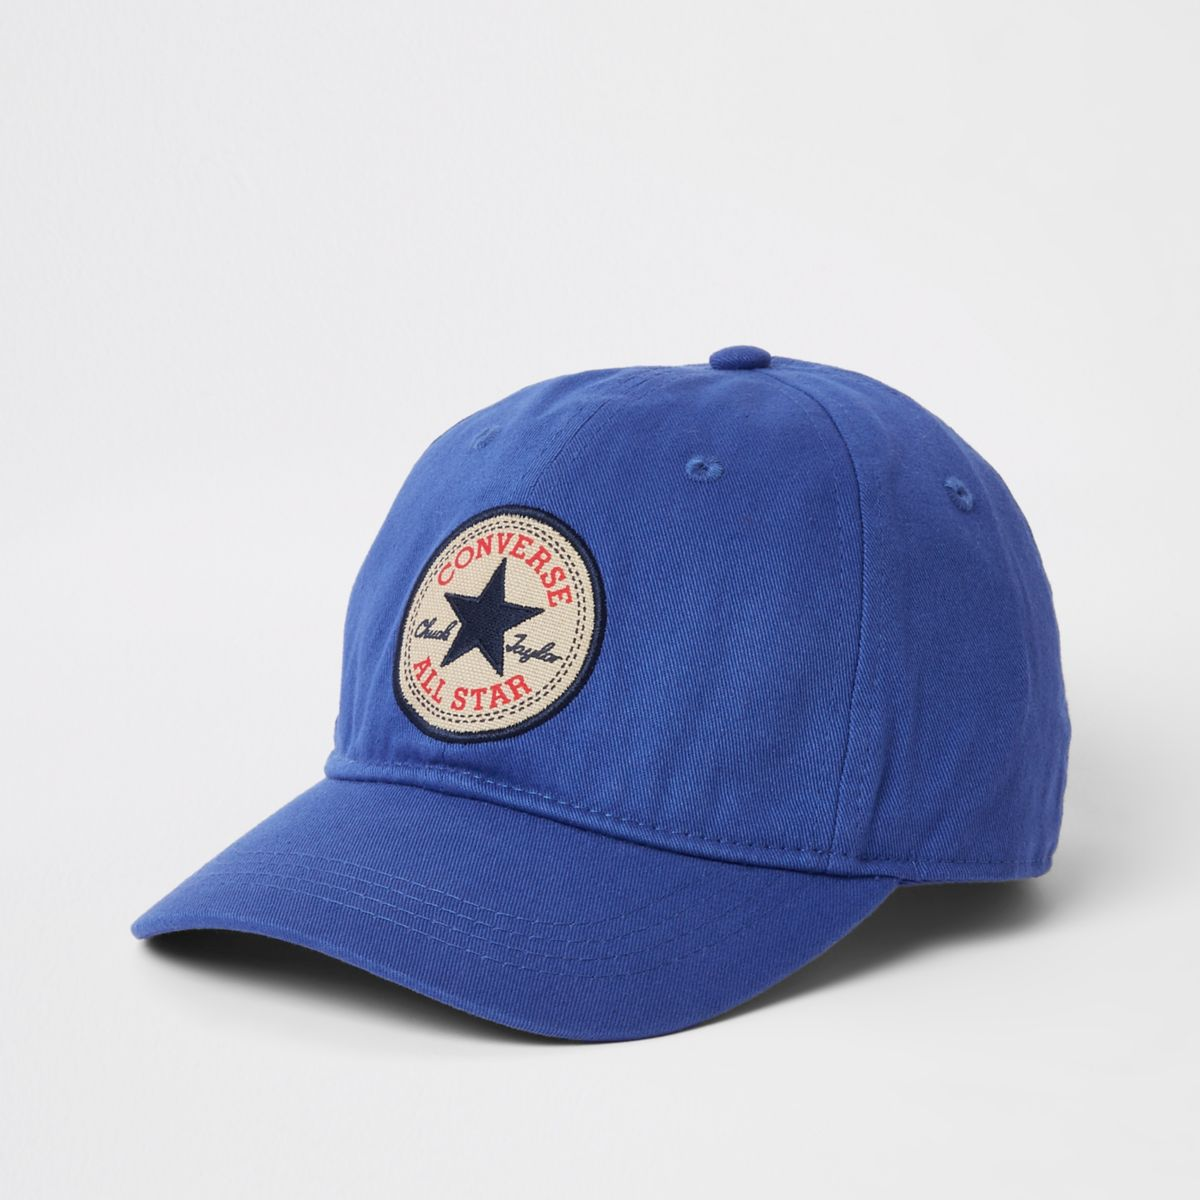 Kids blue Converse cap